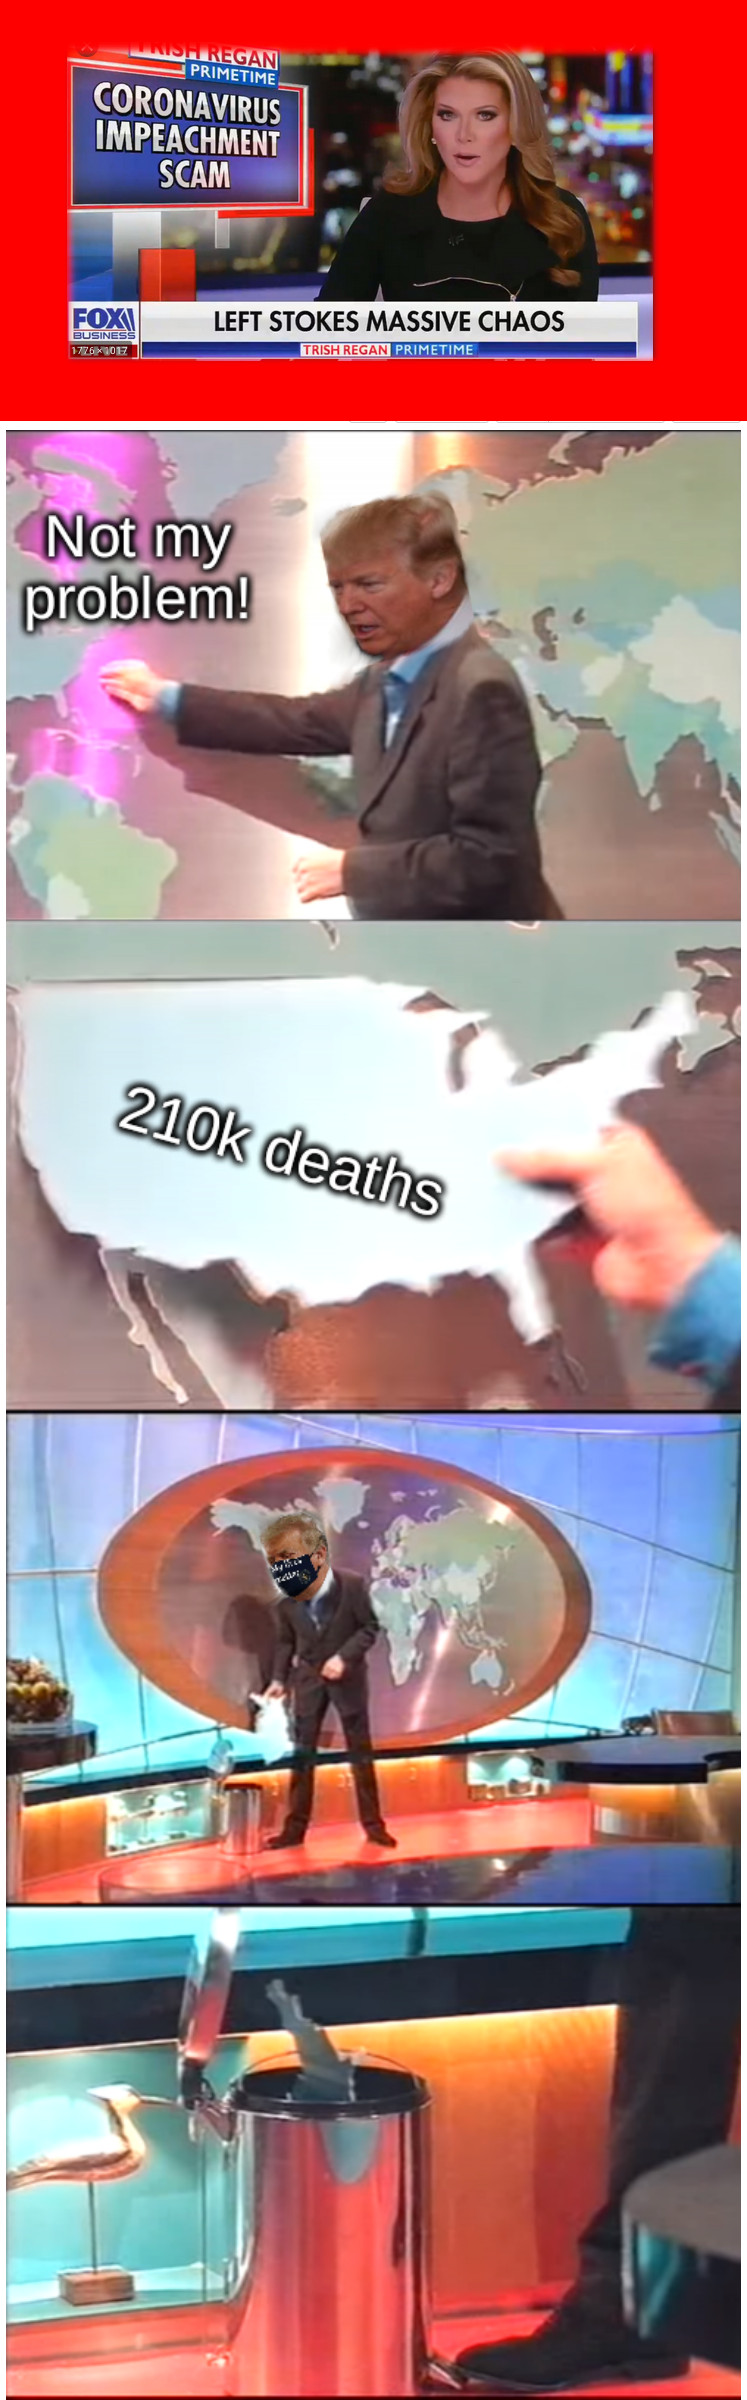 210k deaths; Not my problem!